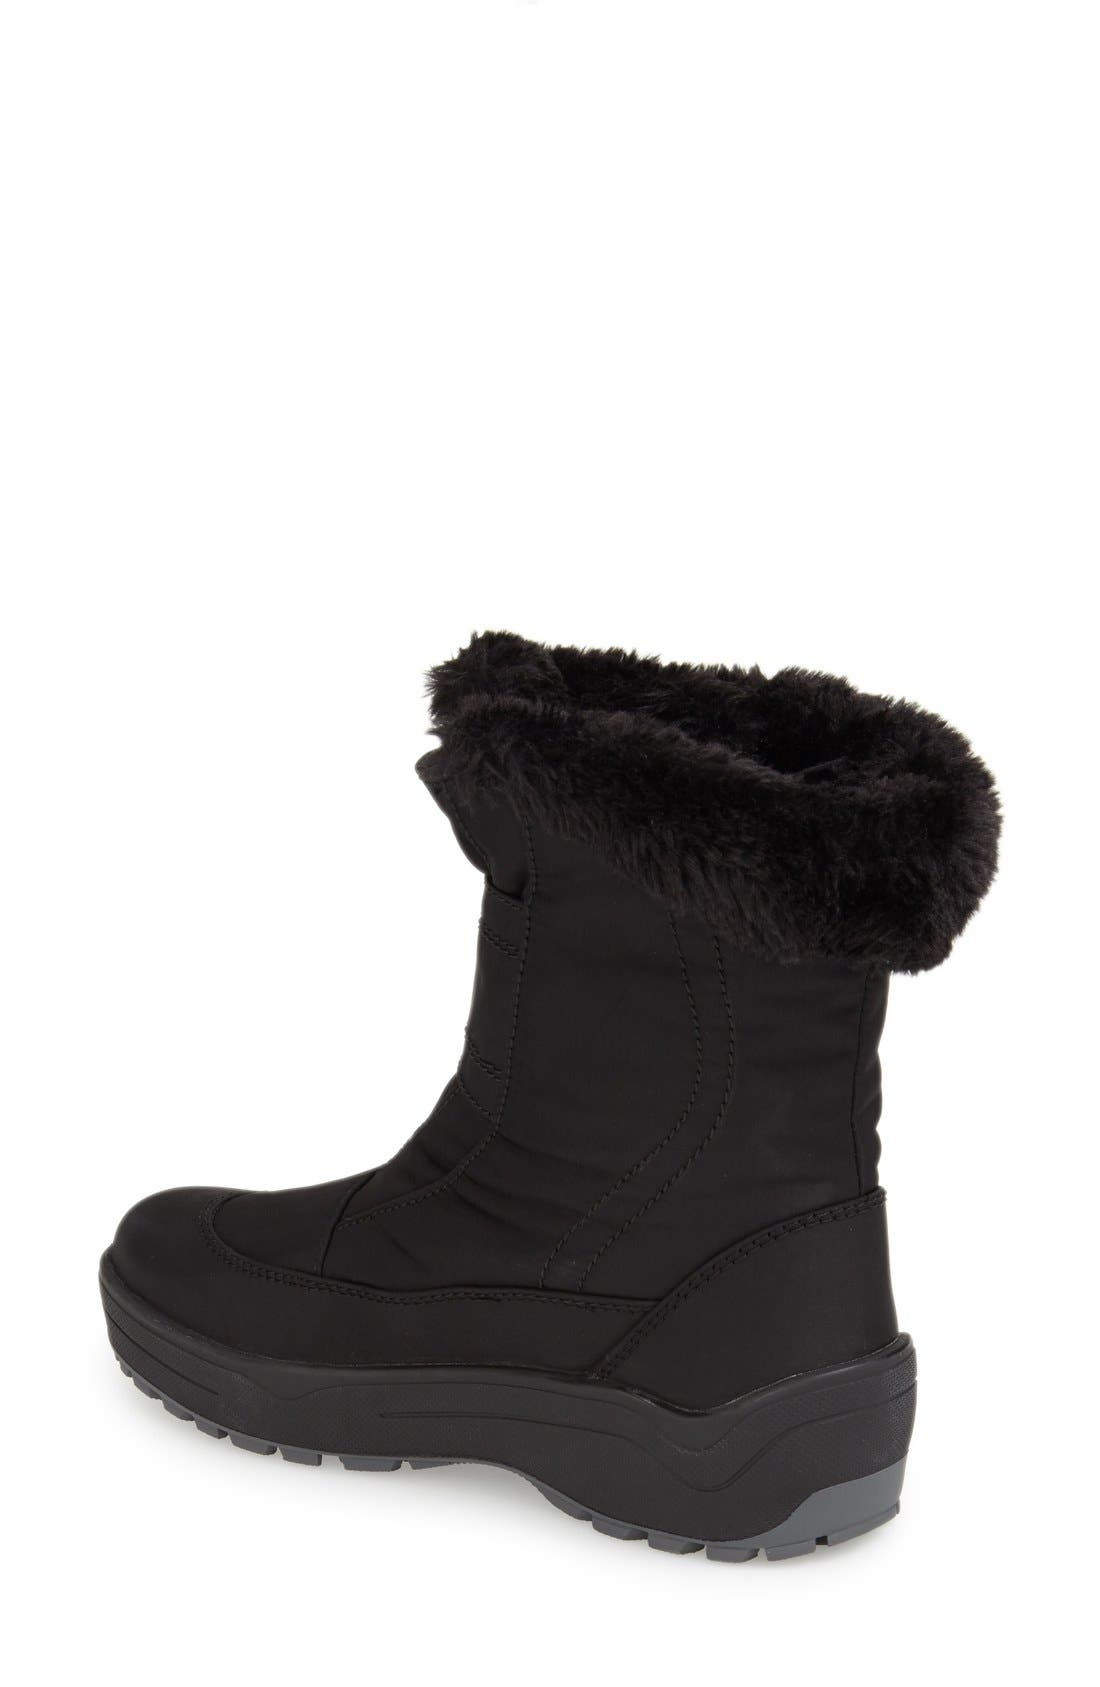 Shoes 'Moscou' Snow Boot,                             Alternate thumbnail 10, color,